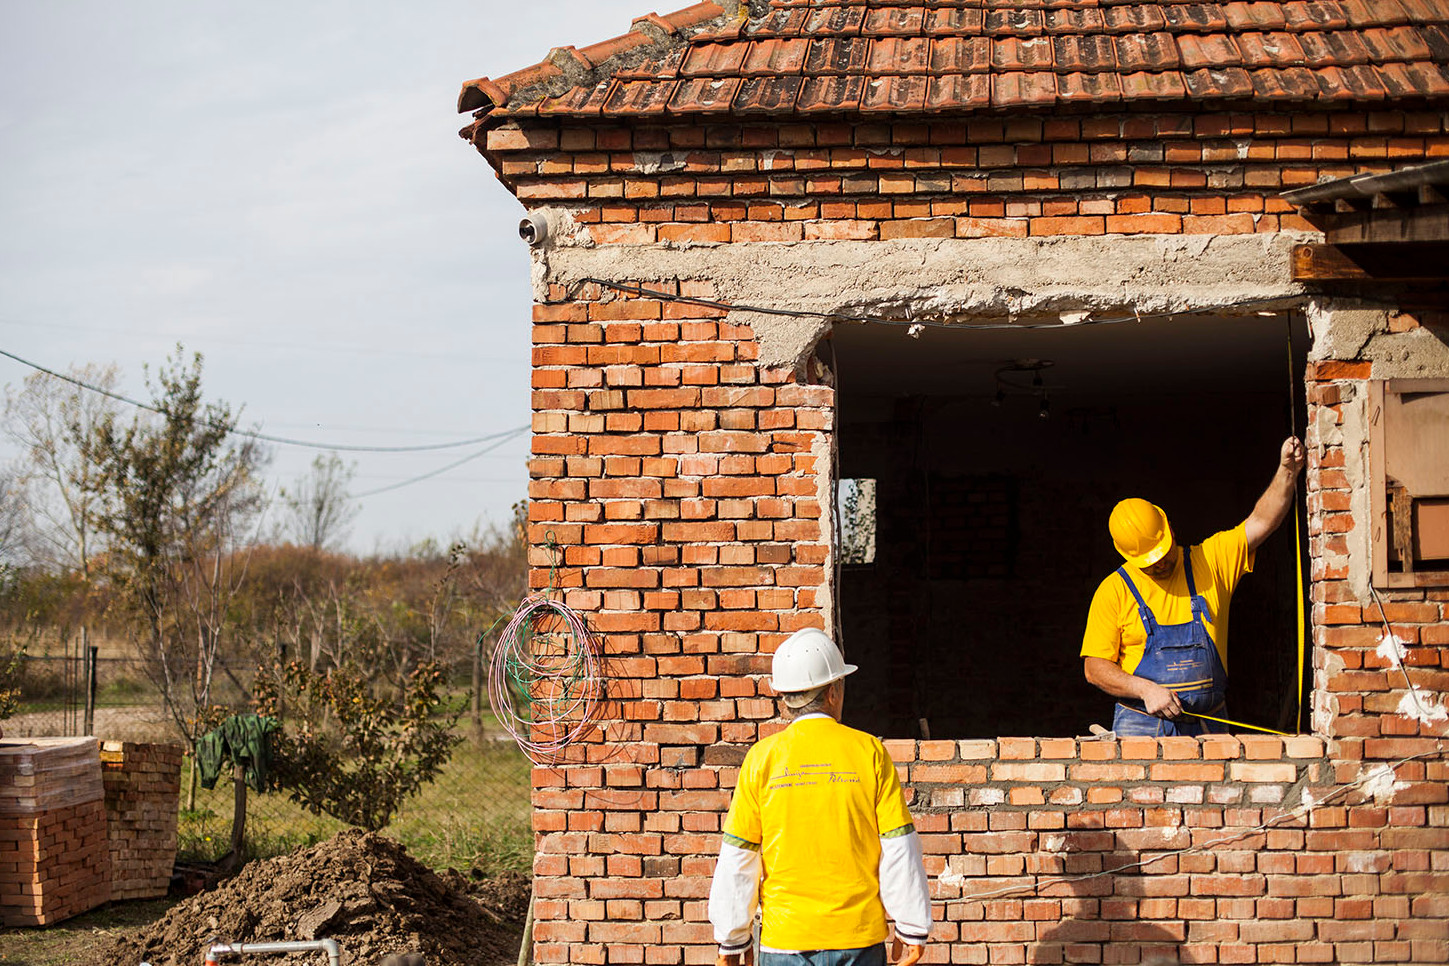 Zikica Ulamovic EU Assistance for Flood Relief in Serbia 122.jpg